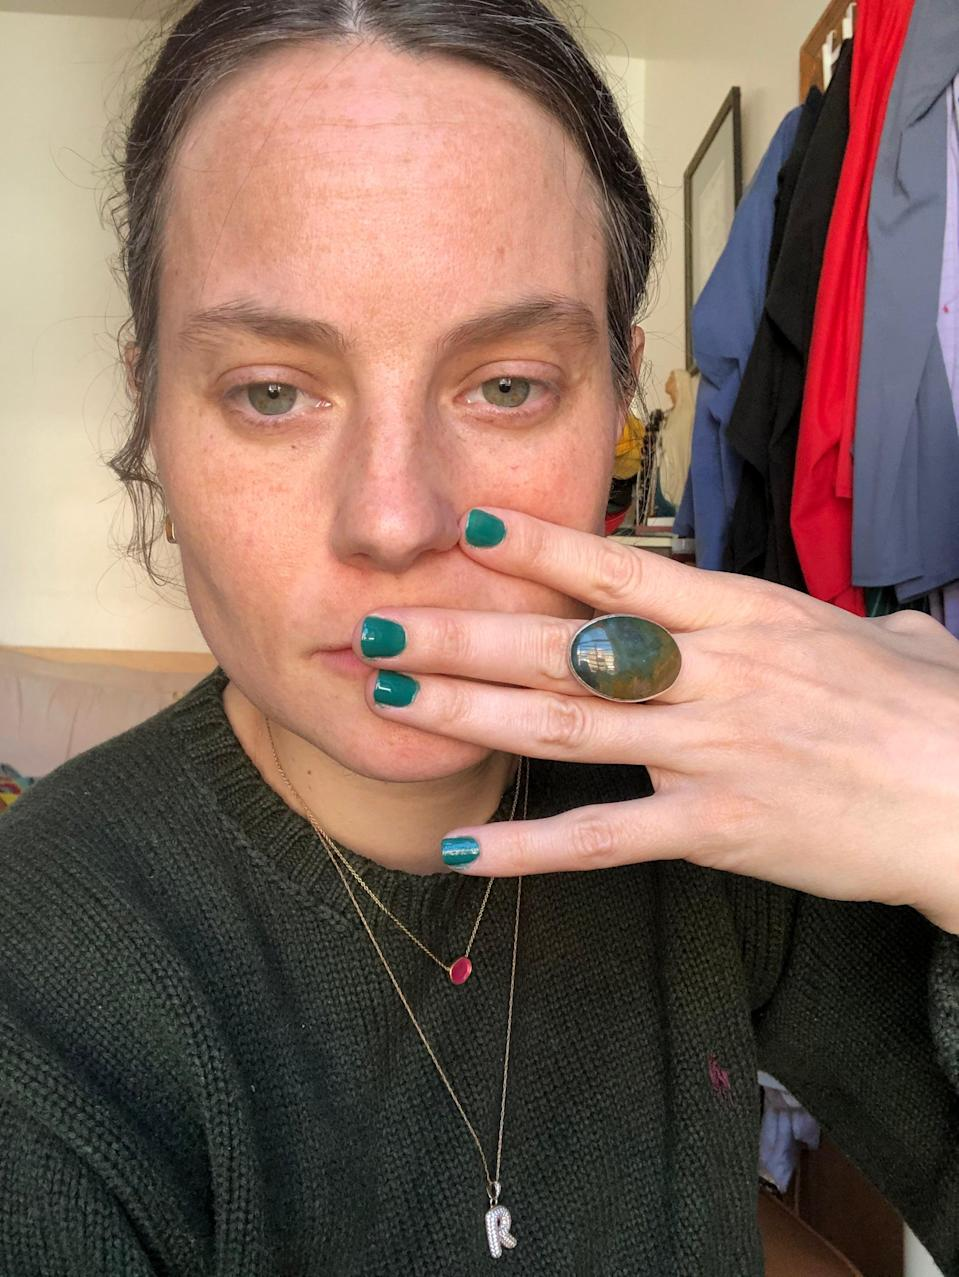 "<h2>Olive & June Besties Nail Polish</h2><br>""I gotta be honest, this type of emerald green is usually not my preferred nail color, but I tried it recently at the behest of our beauty editor Karina Hoshikawa and I was pleasantly surprised at how much I liked it. This (at-home) paint job is fresh, but I know from previous forays into the world of Olive & June that it's got staying power. Plus, the LA brand's long-wearing nail varnish is ""7-free"" — meaning it doesn't contain any of common nail polish toxins, including toluene, dibutyl phthalate, formaldehyde, formaldehyde resin, camphor, ethyl tosylamide, and xylene."" <em>– Emily Ruane, Fashion Writer</em><br><br><em>Shop <strong><a href=""https://oliveandjune.com/collections/nail-polish/products/besties"" rel=""nofollow noopener"" target=""_blank"" data-ylk=""slk:Olive & June"" class=""link rapid-noclick-resp"">Olive & June</a></strong></em><br><br><strong>Olive & June</strong> Besties Nail Polish, $, available at <a href=""https://go.skimresources.com/?id=30283X879131&url=https%3A%2F%2Foliveandjune.com%2Fcollections%2Fnail-polish%2Fproducts%2Fbesties"" rel=""nofollow noopener"" target=""_blank"" data-ylk=""slk:Olive & June"" class=""link rapid-noclick-resp"">Olive & June</a>"